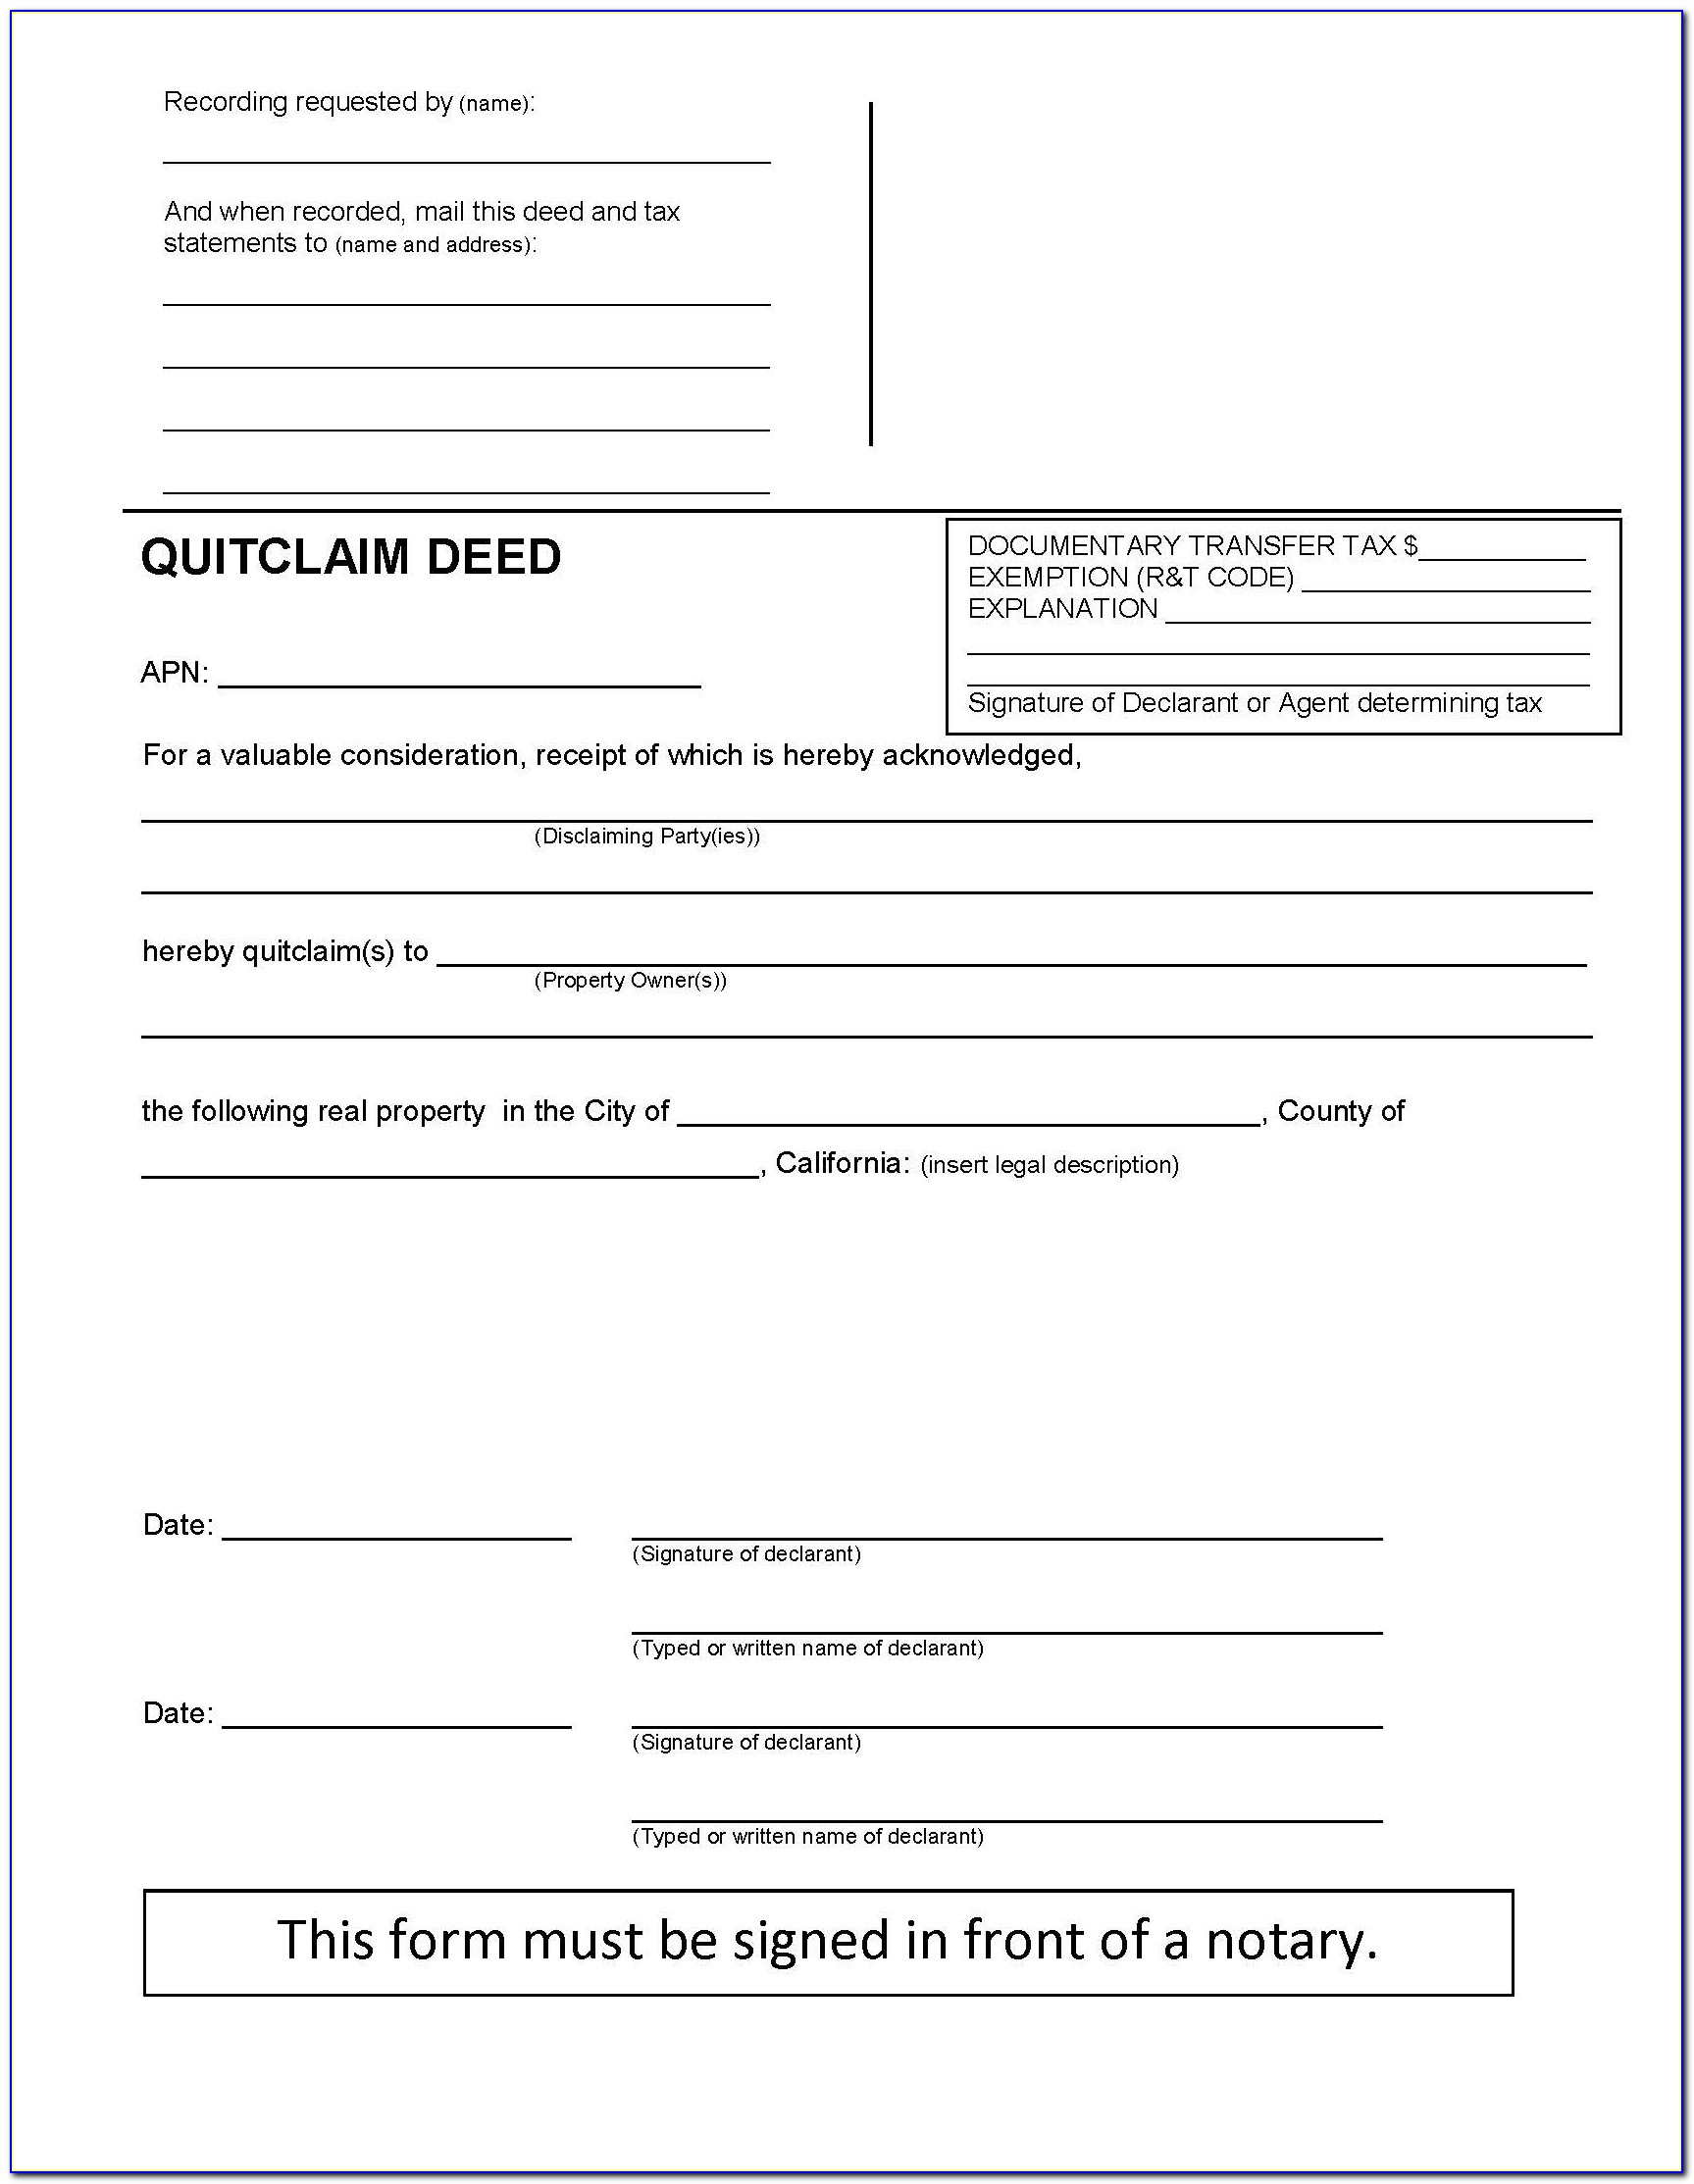 quick claim deed form orange county california  Orange County Ca Quit Claim Deed Form - Form : Resume ...